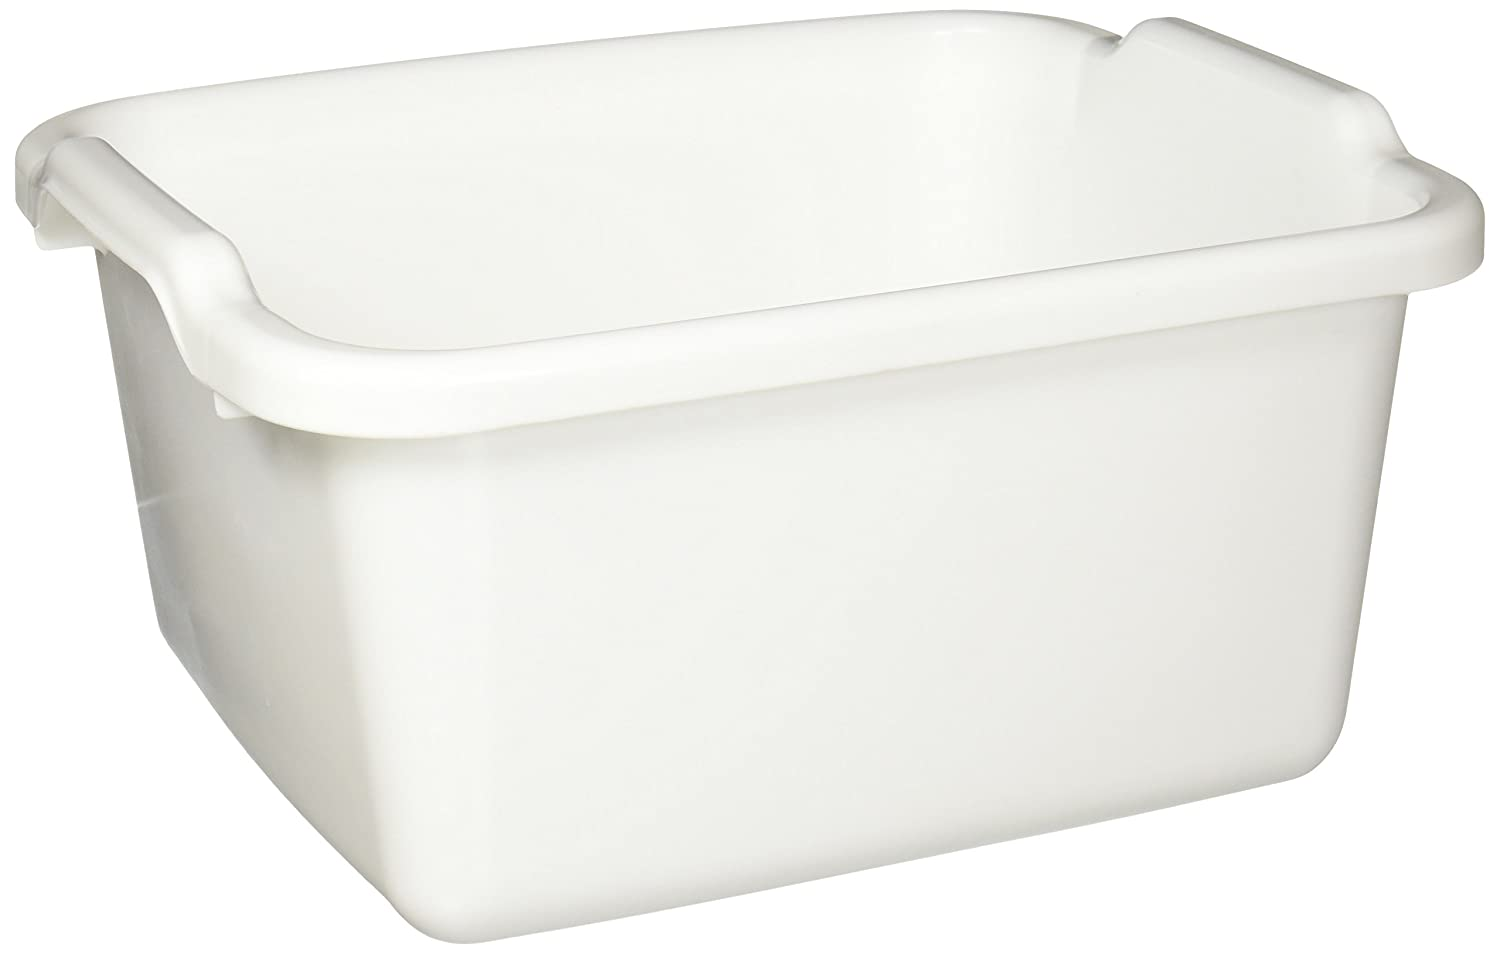 Rubbermaid Antimicrobial Dish Bucket, 15.6-Quart, Clear (FG2970ARWHT)